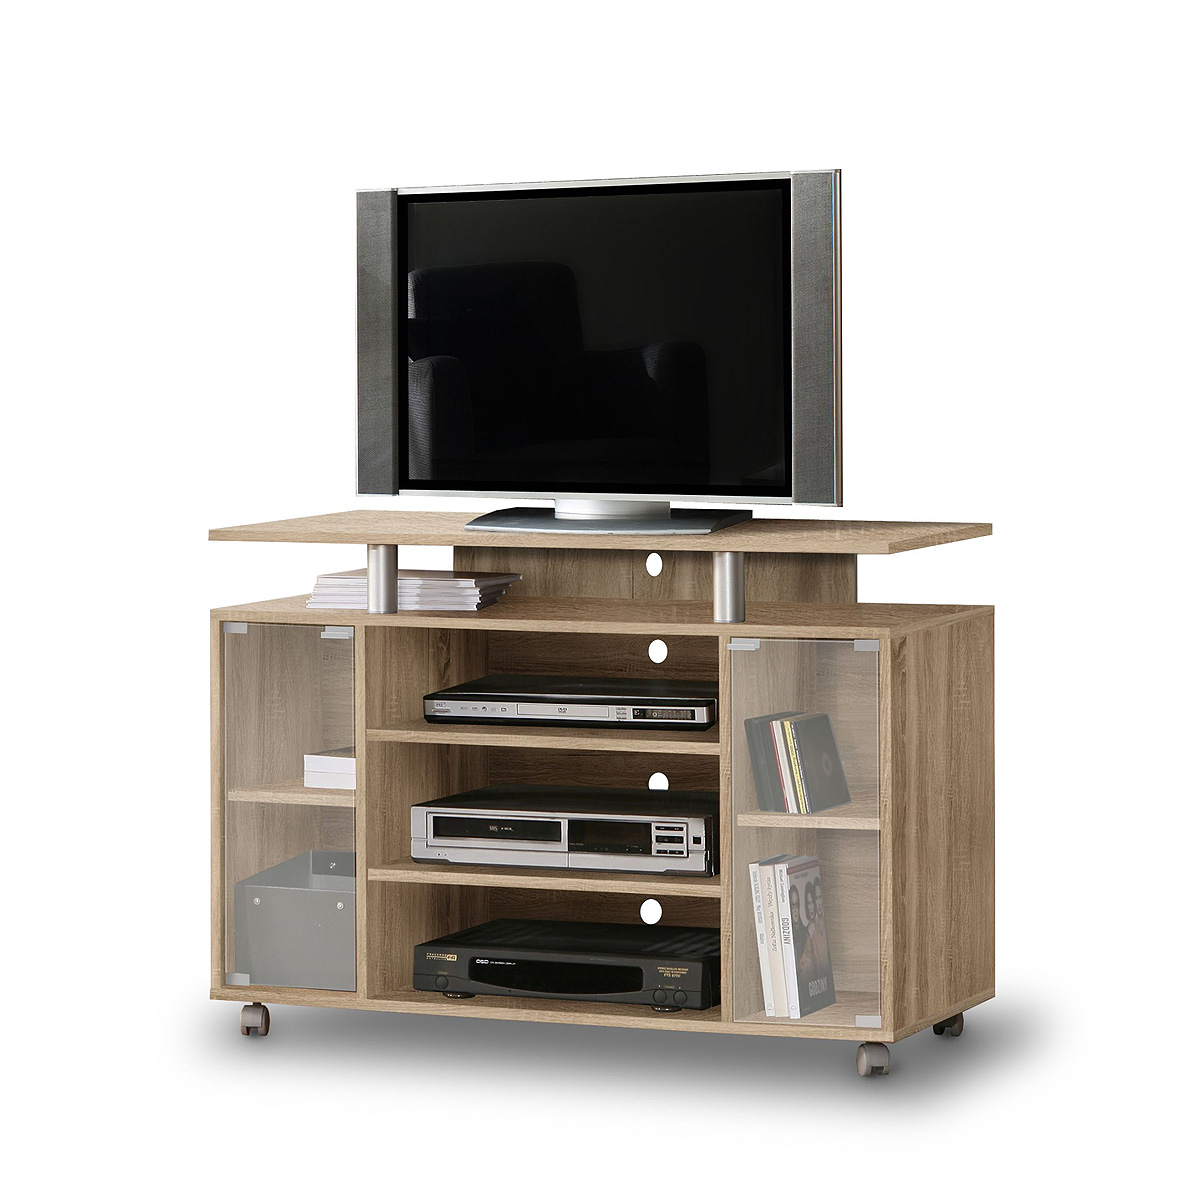 tv schrank aus weinkisten m bel design idee f r sie. Black Bedroom Furniture Sets. Home Design Ideas